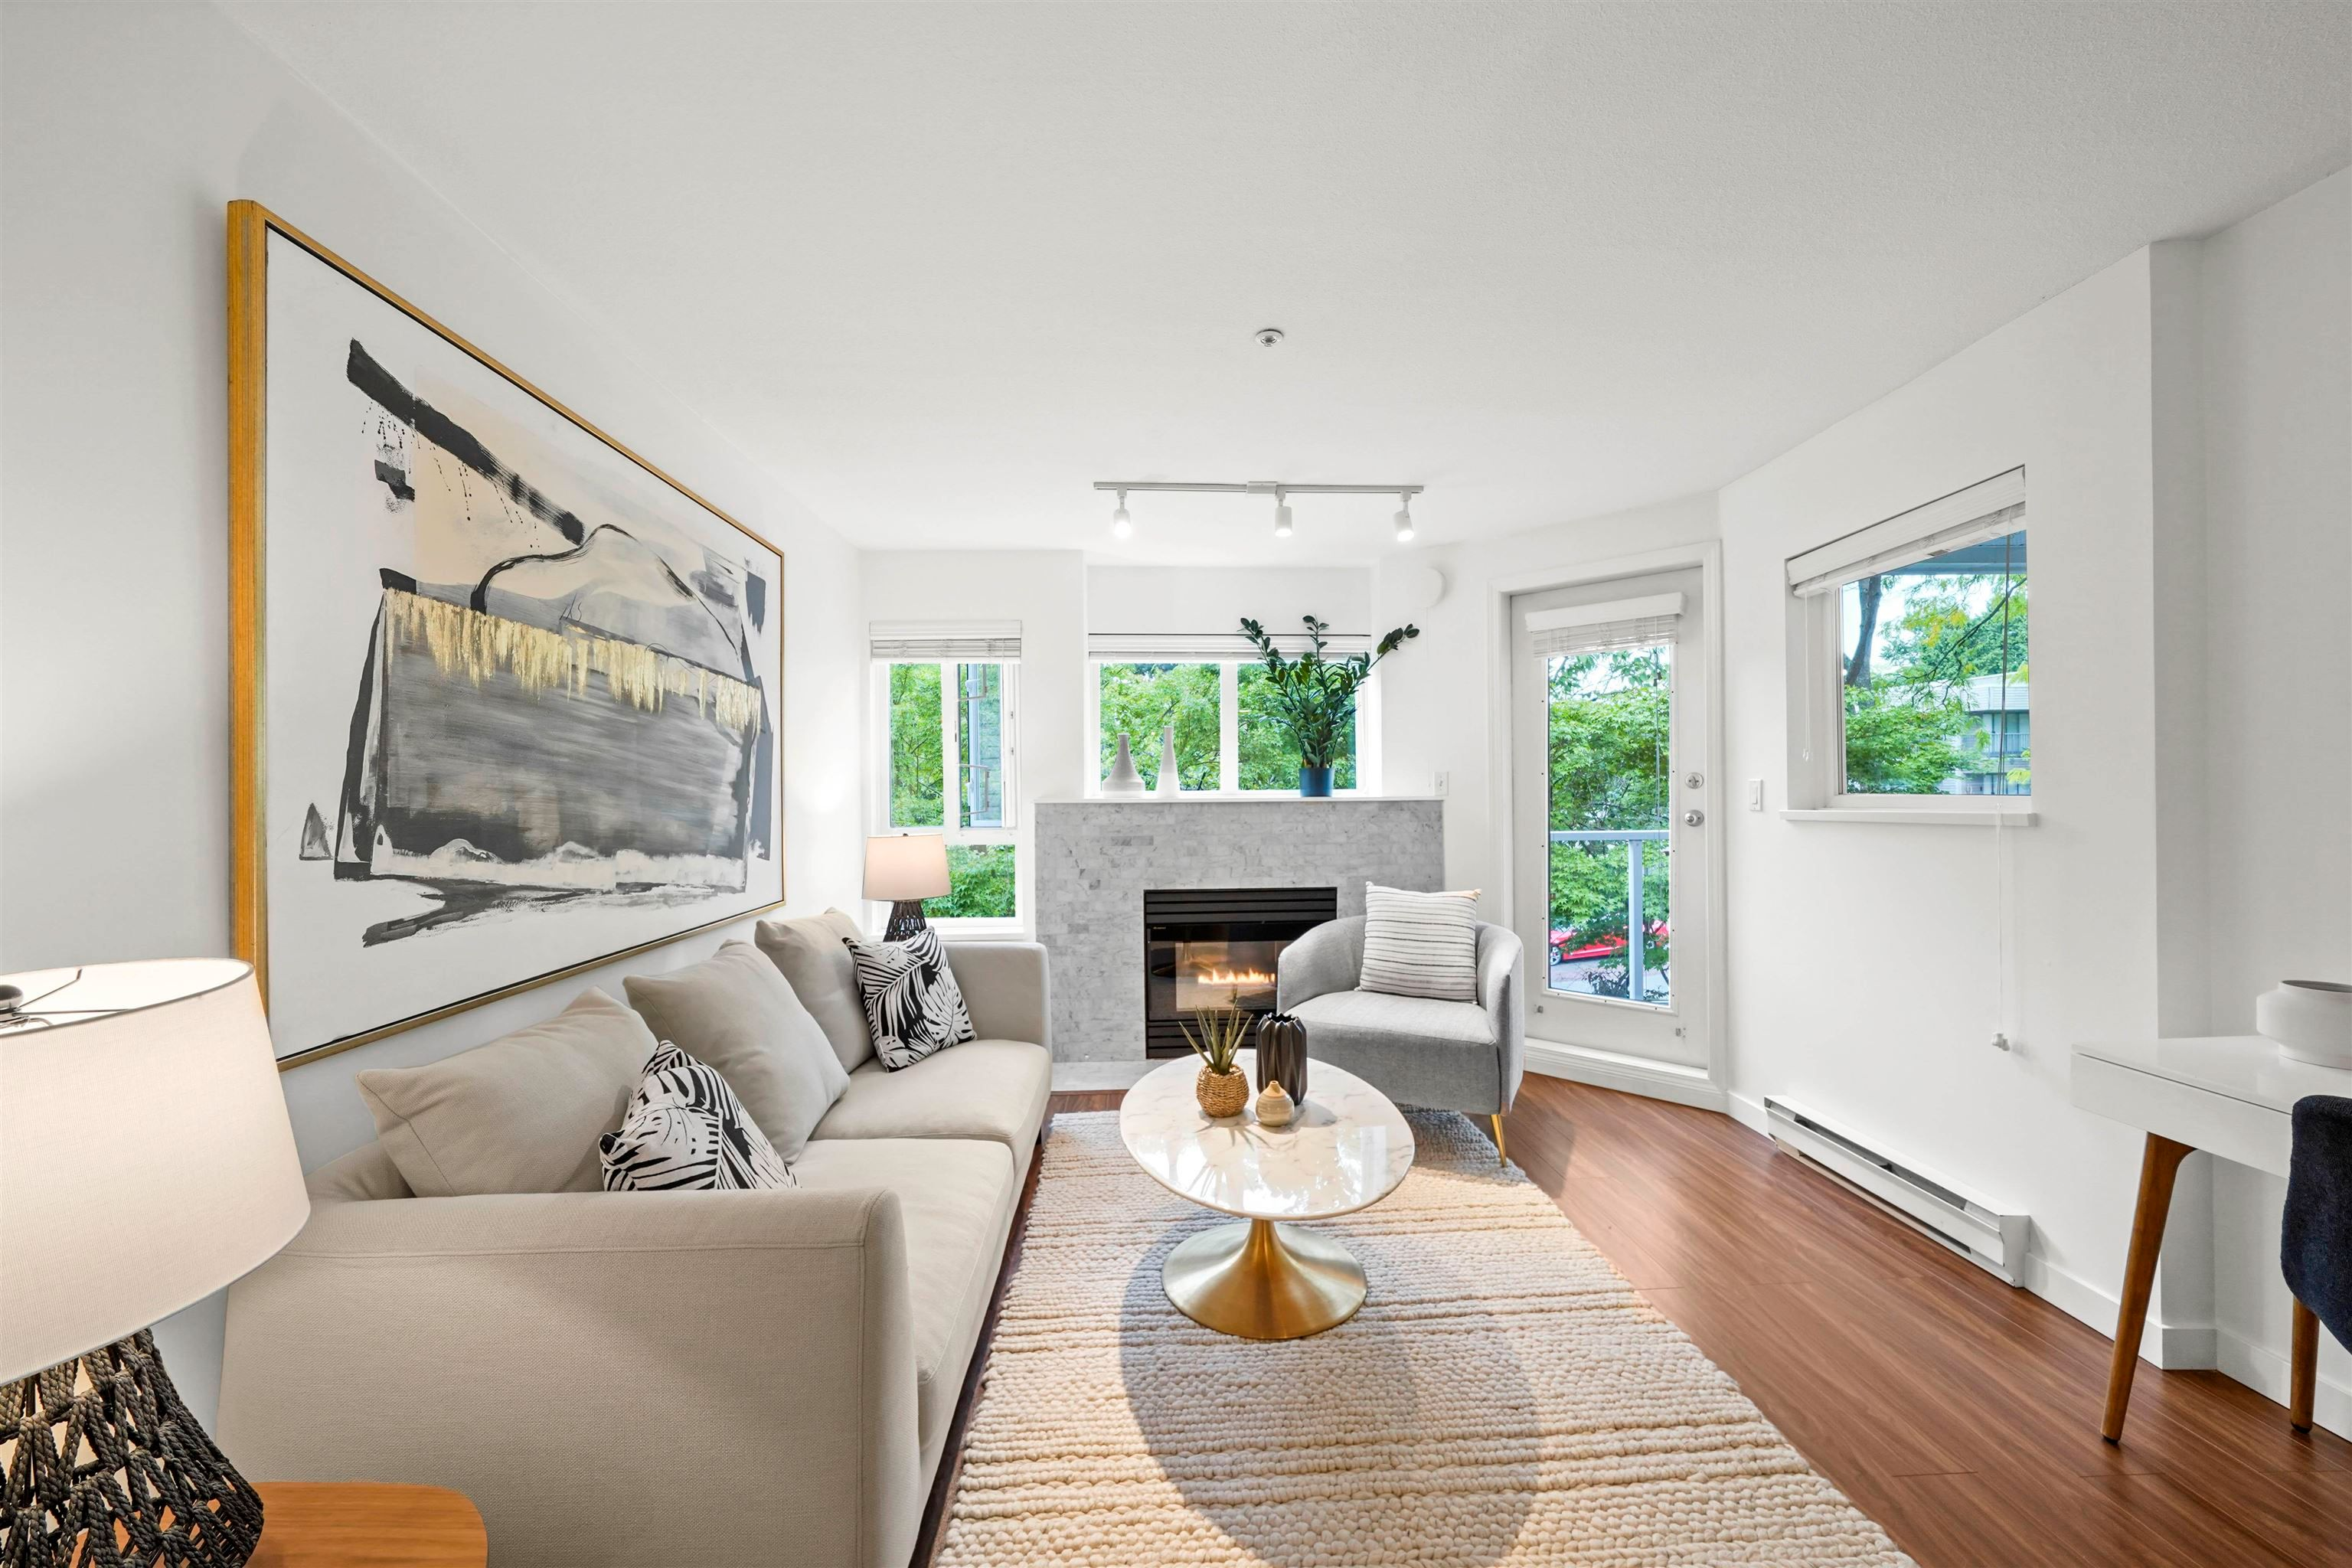 """Main Photo: 308 1738 FRANCES Street in Vancouver: Hastings Condo for sale in """"CITY GARDENS"""" (Vancouver East)  : MLS®# R2614086"""